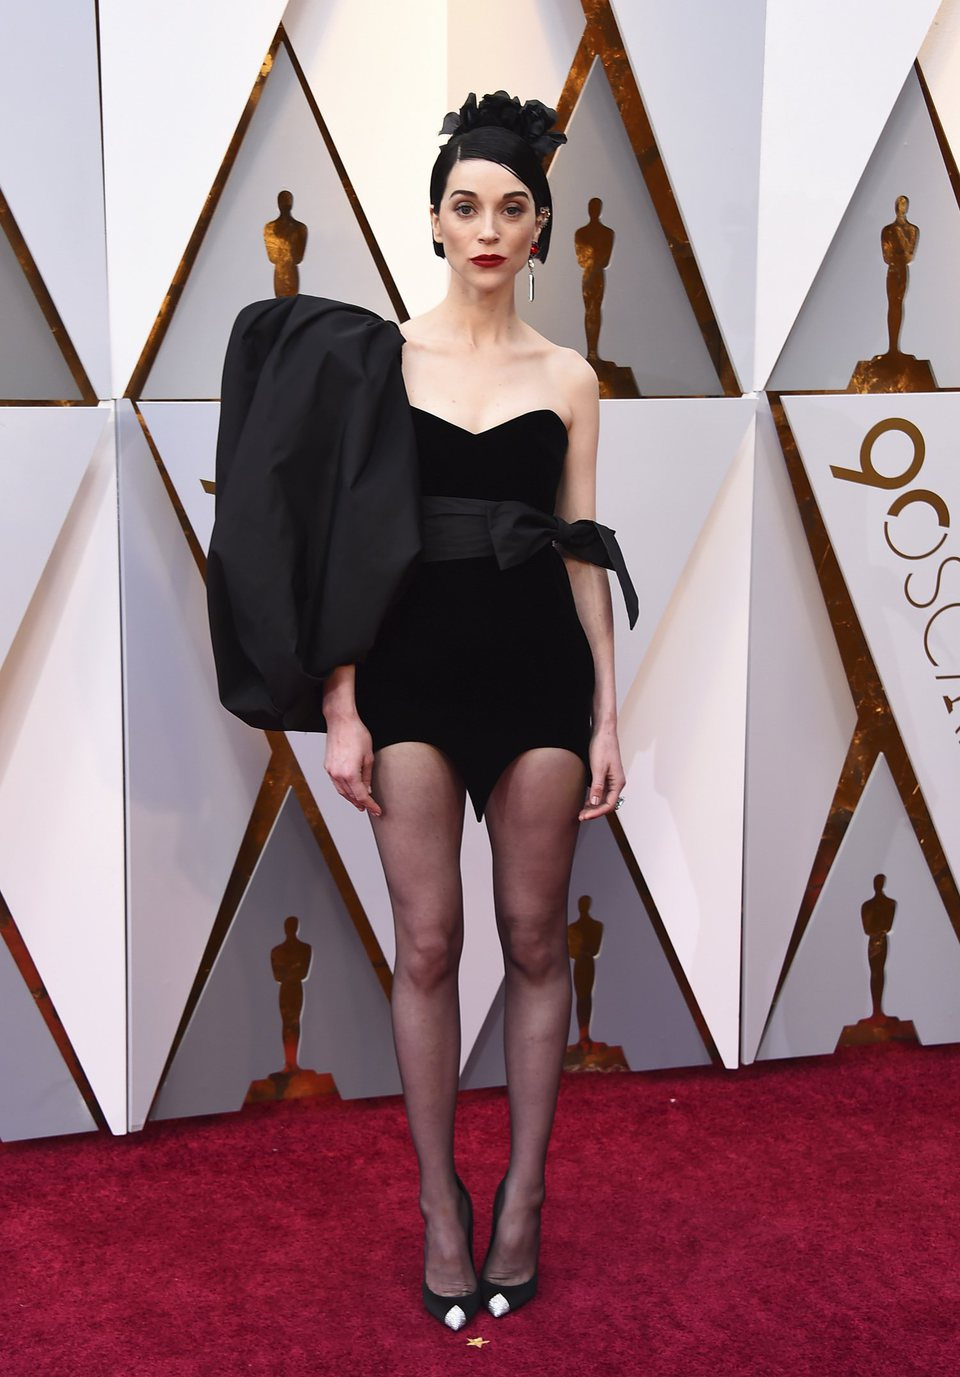 St. Vincent at the Oscars 2018 red carpet